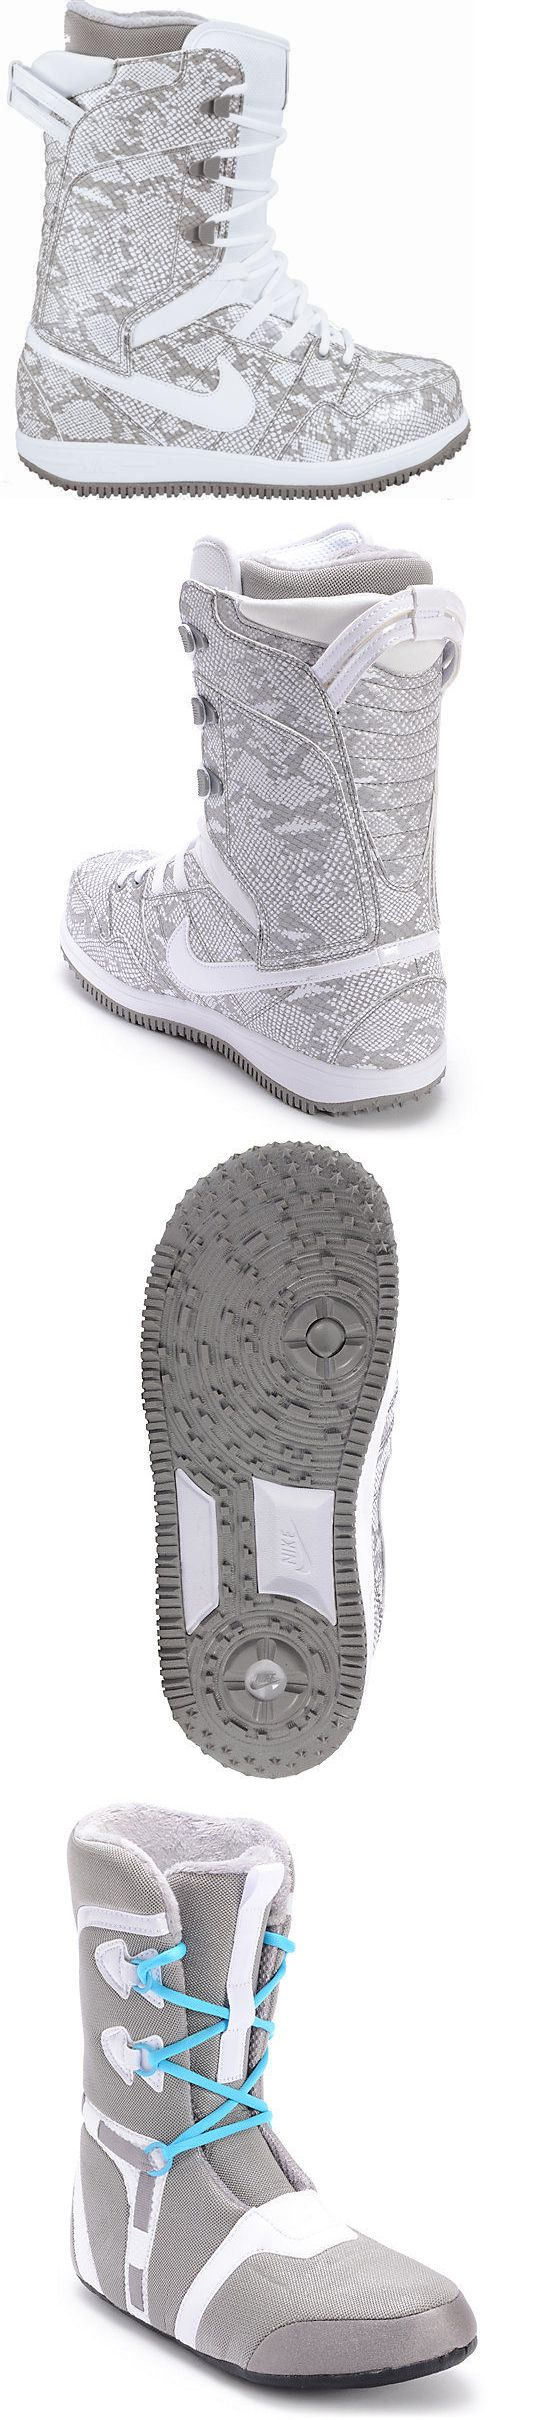 Boots 36292: Nike Vapen Snakeskin Grey And White Size 6.5 Womens Snowboard Boots BUY IT NOW ONLY: $132.05